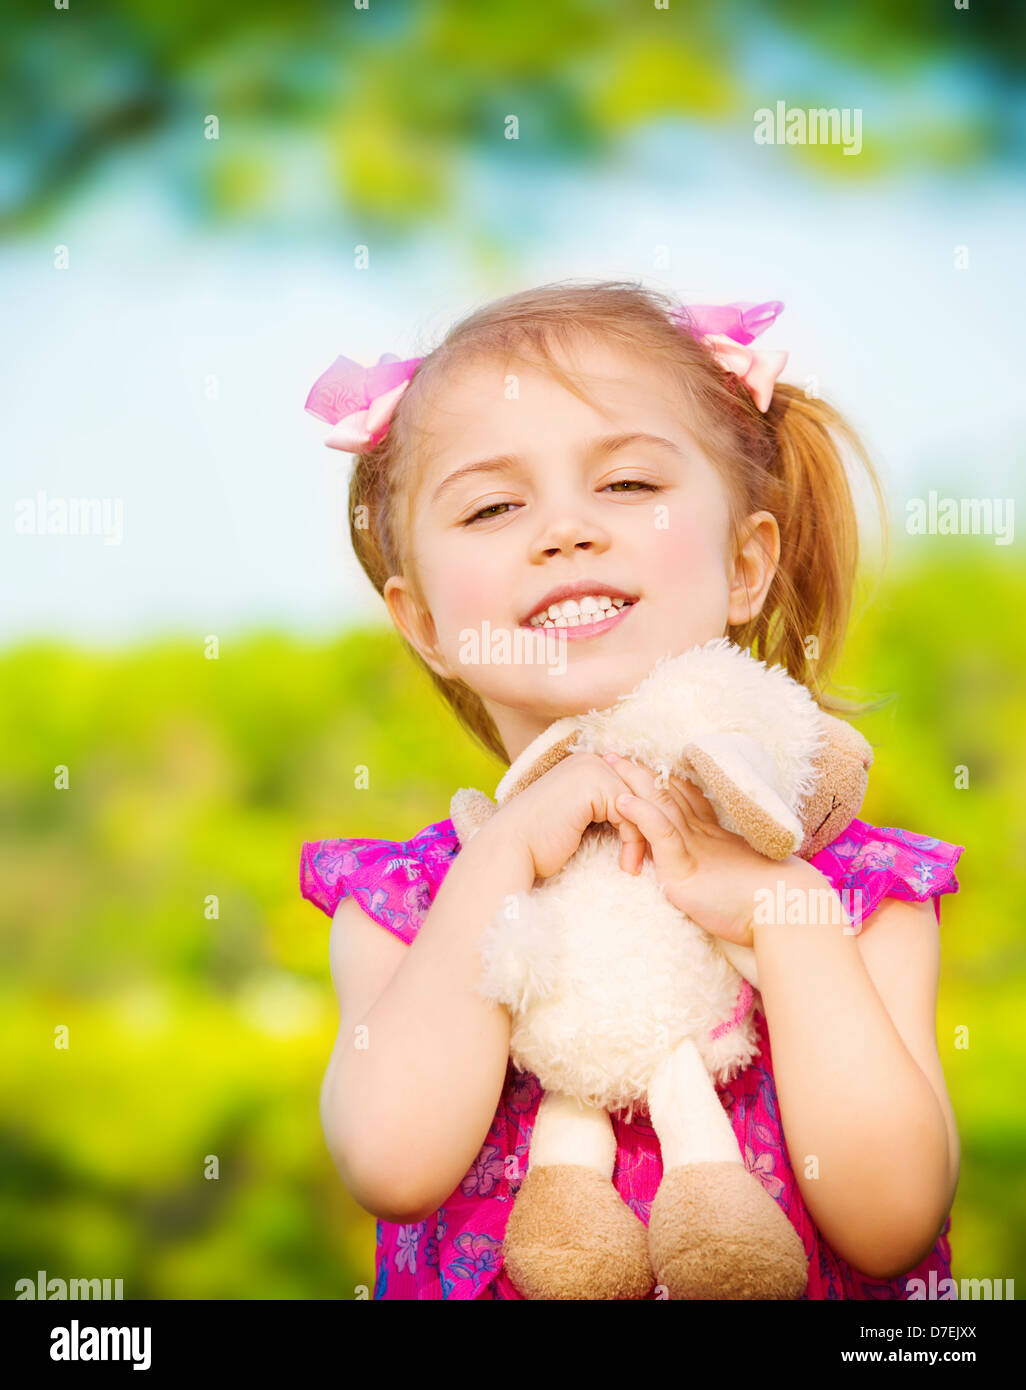 Sweet little girl hug soft toy outdoors in spring time, playing game on backyard, day care, happy childhood concept - Stock Image